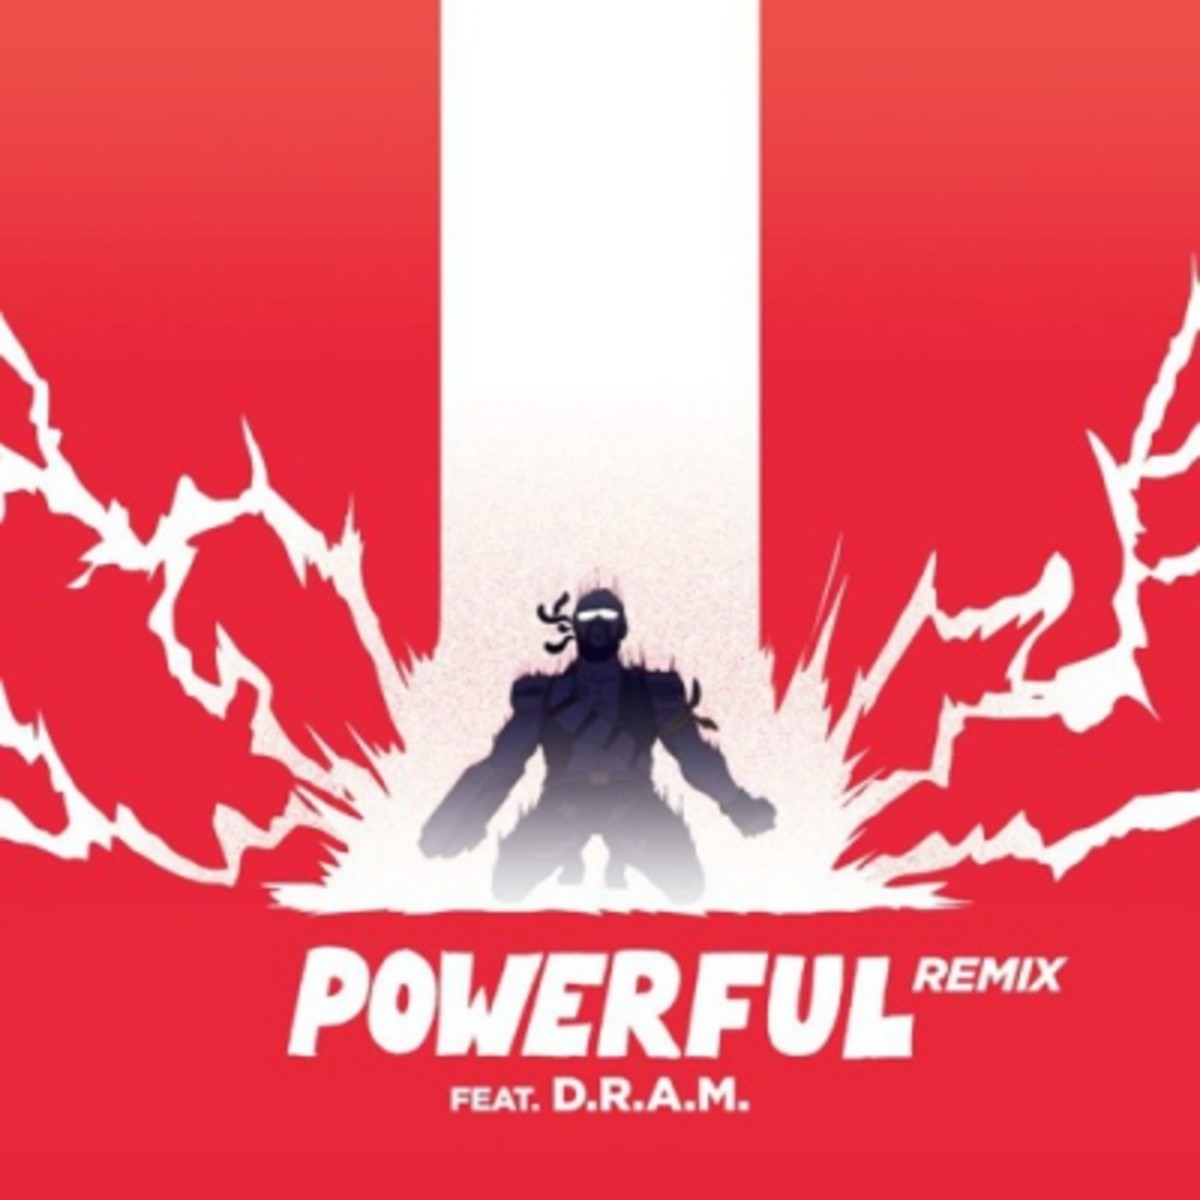 major-lazer-powerful-remix.jpg